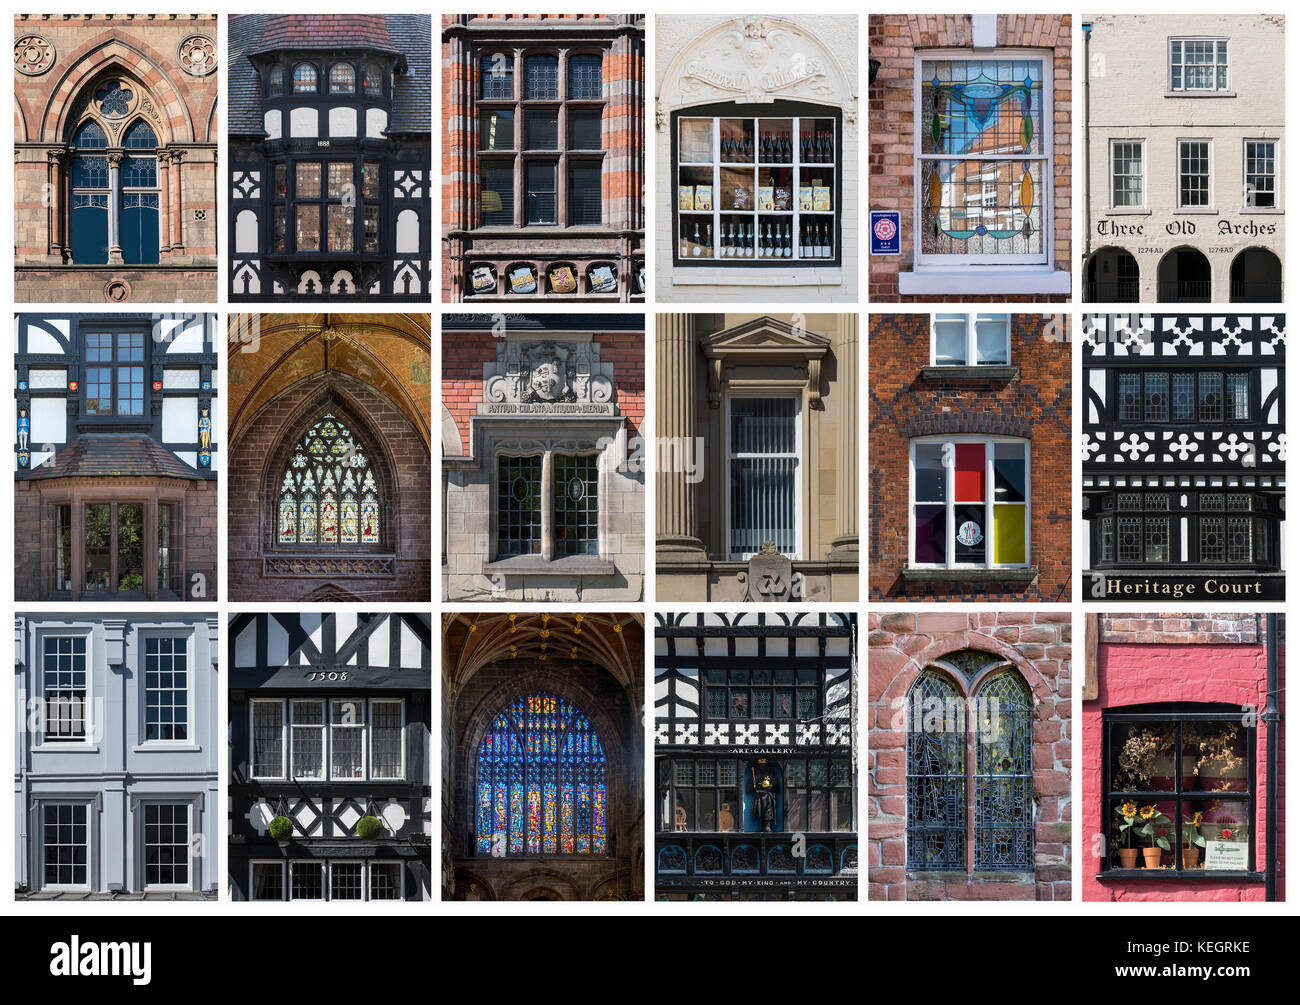 Montage of different windows in the city of Chester, Cheshire, England, UK - Stock Image